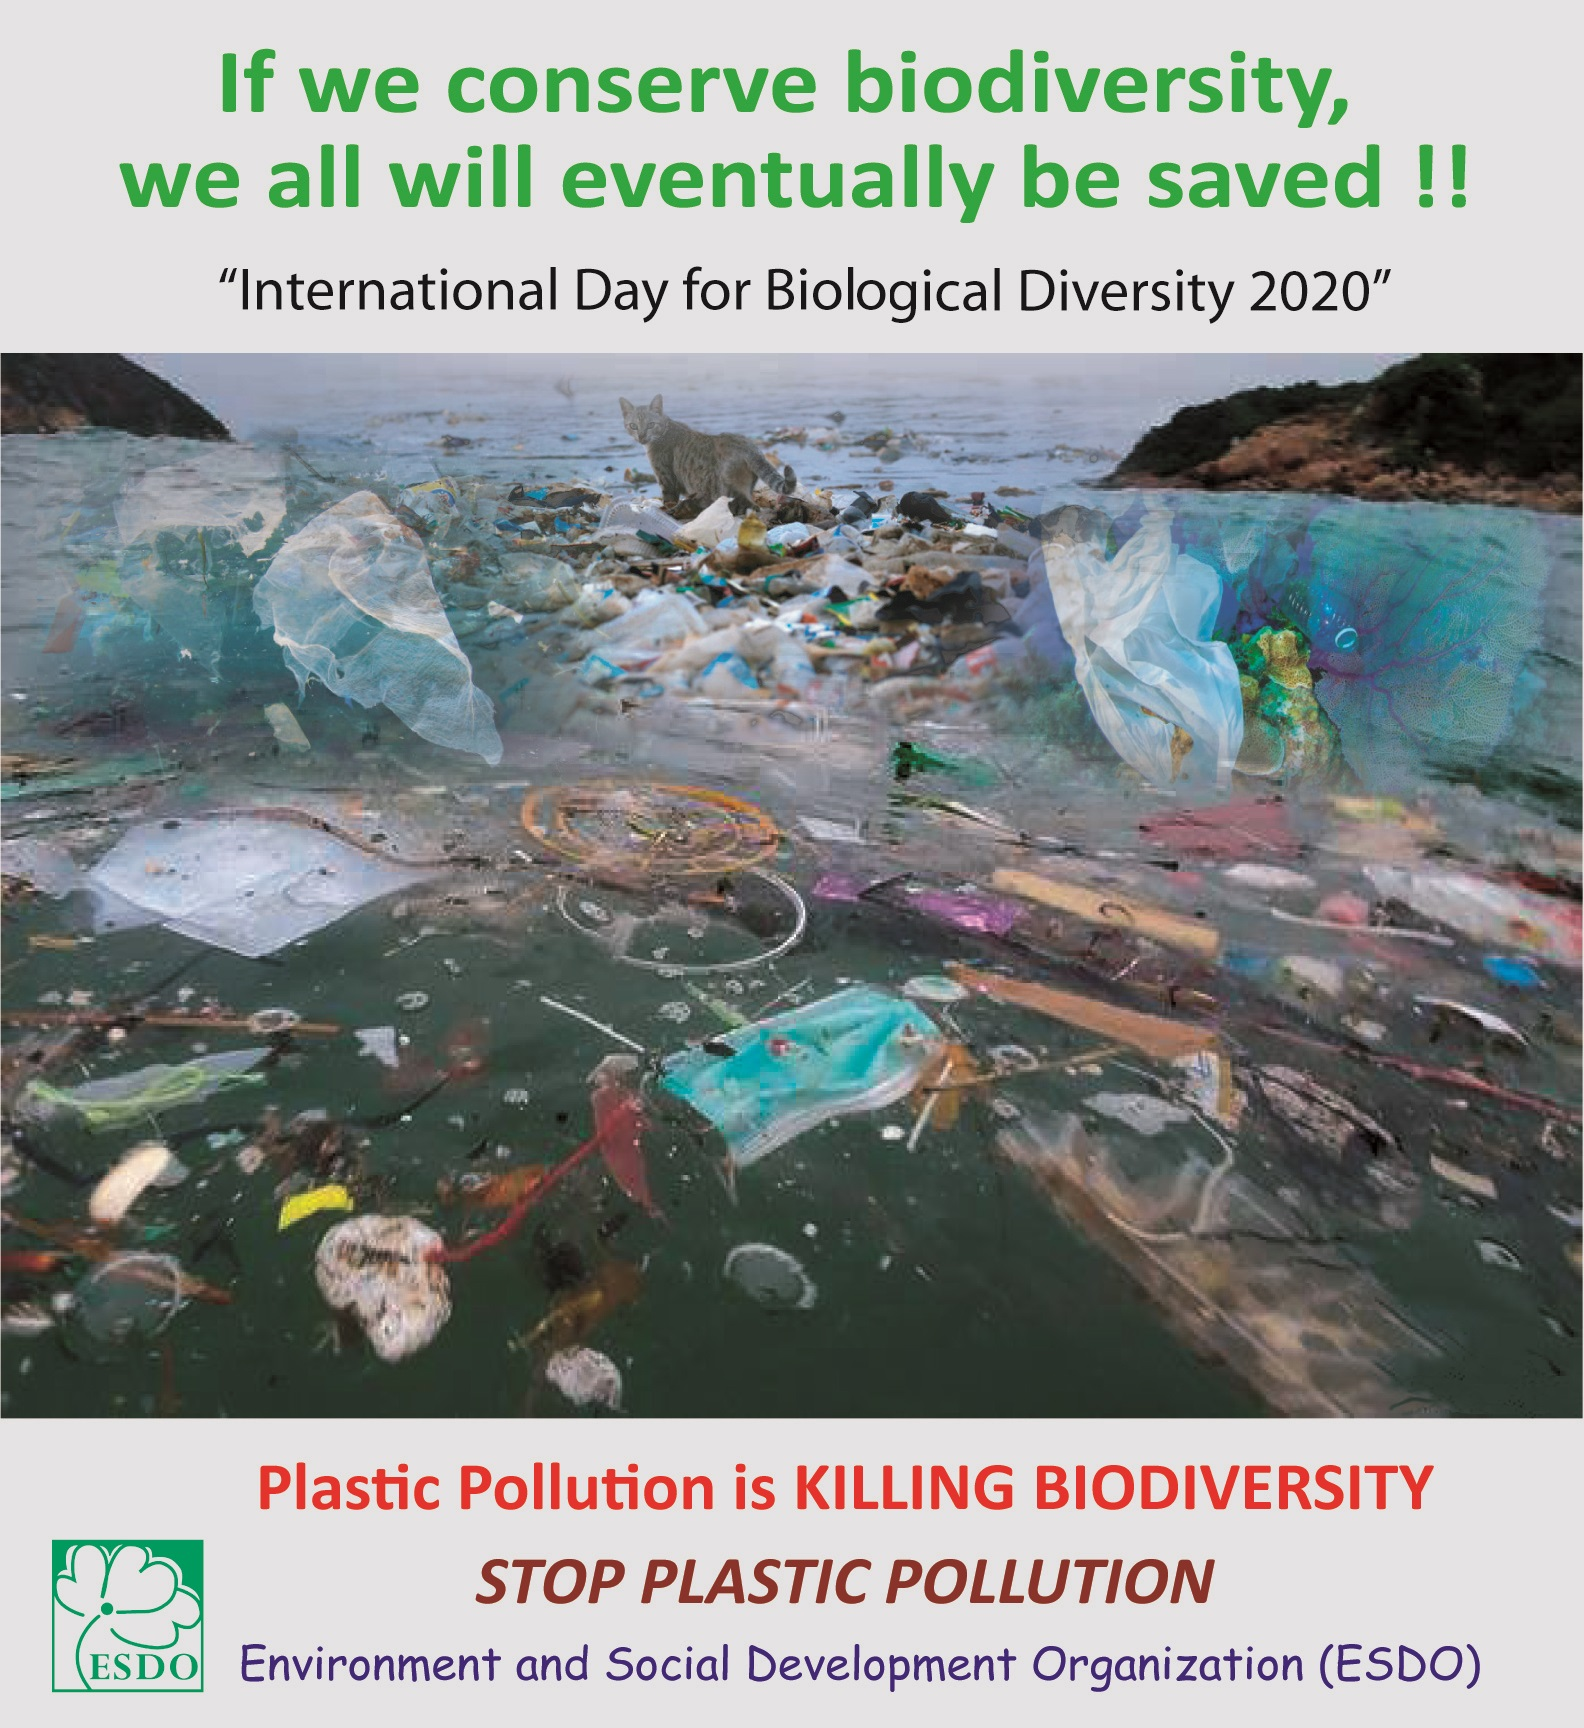 ESDO urges everyone to stop #plasticpollution and to save Biodiversity